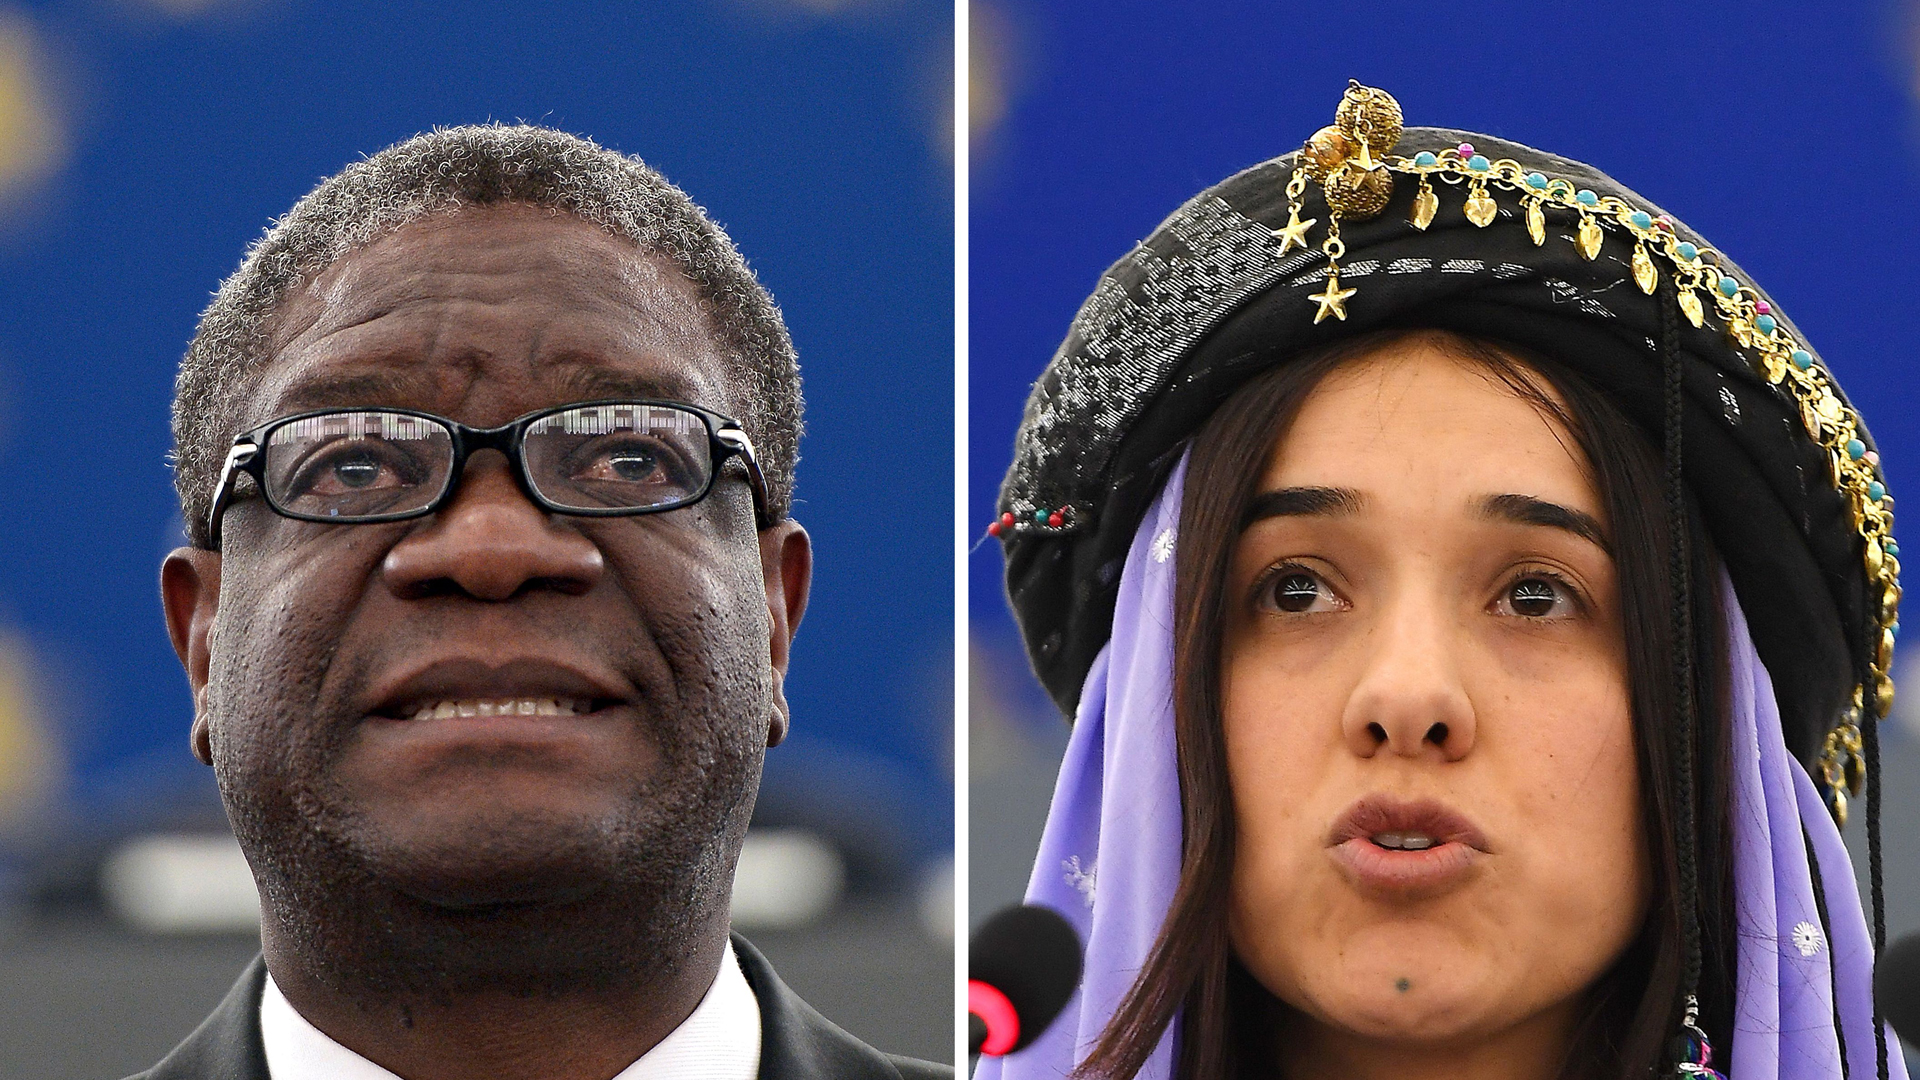 Congolese gynecologist Denis Mukwege is shown on Nov. 26, 2014 at the European Parliament in Strasbourg, and Nadia Murad is shown on Dec. 13, 2016 at the European parliament in Strasbourg. (Credit: Frederick Florin/AFP/Getty Images)